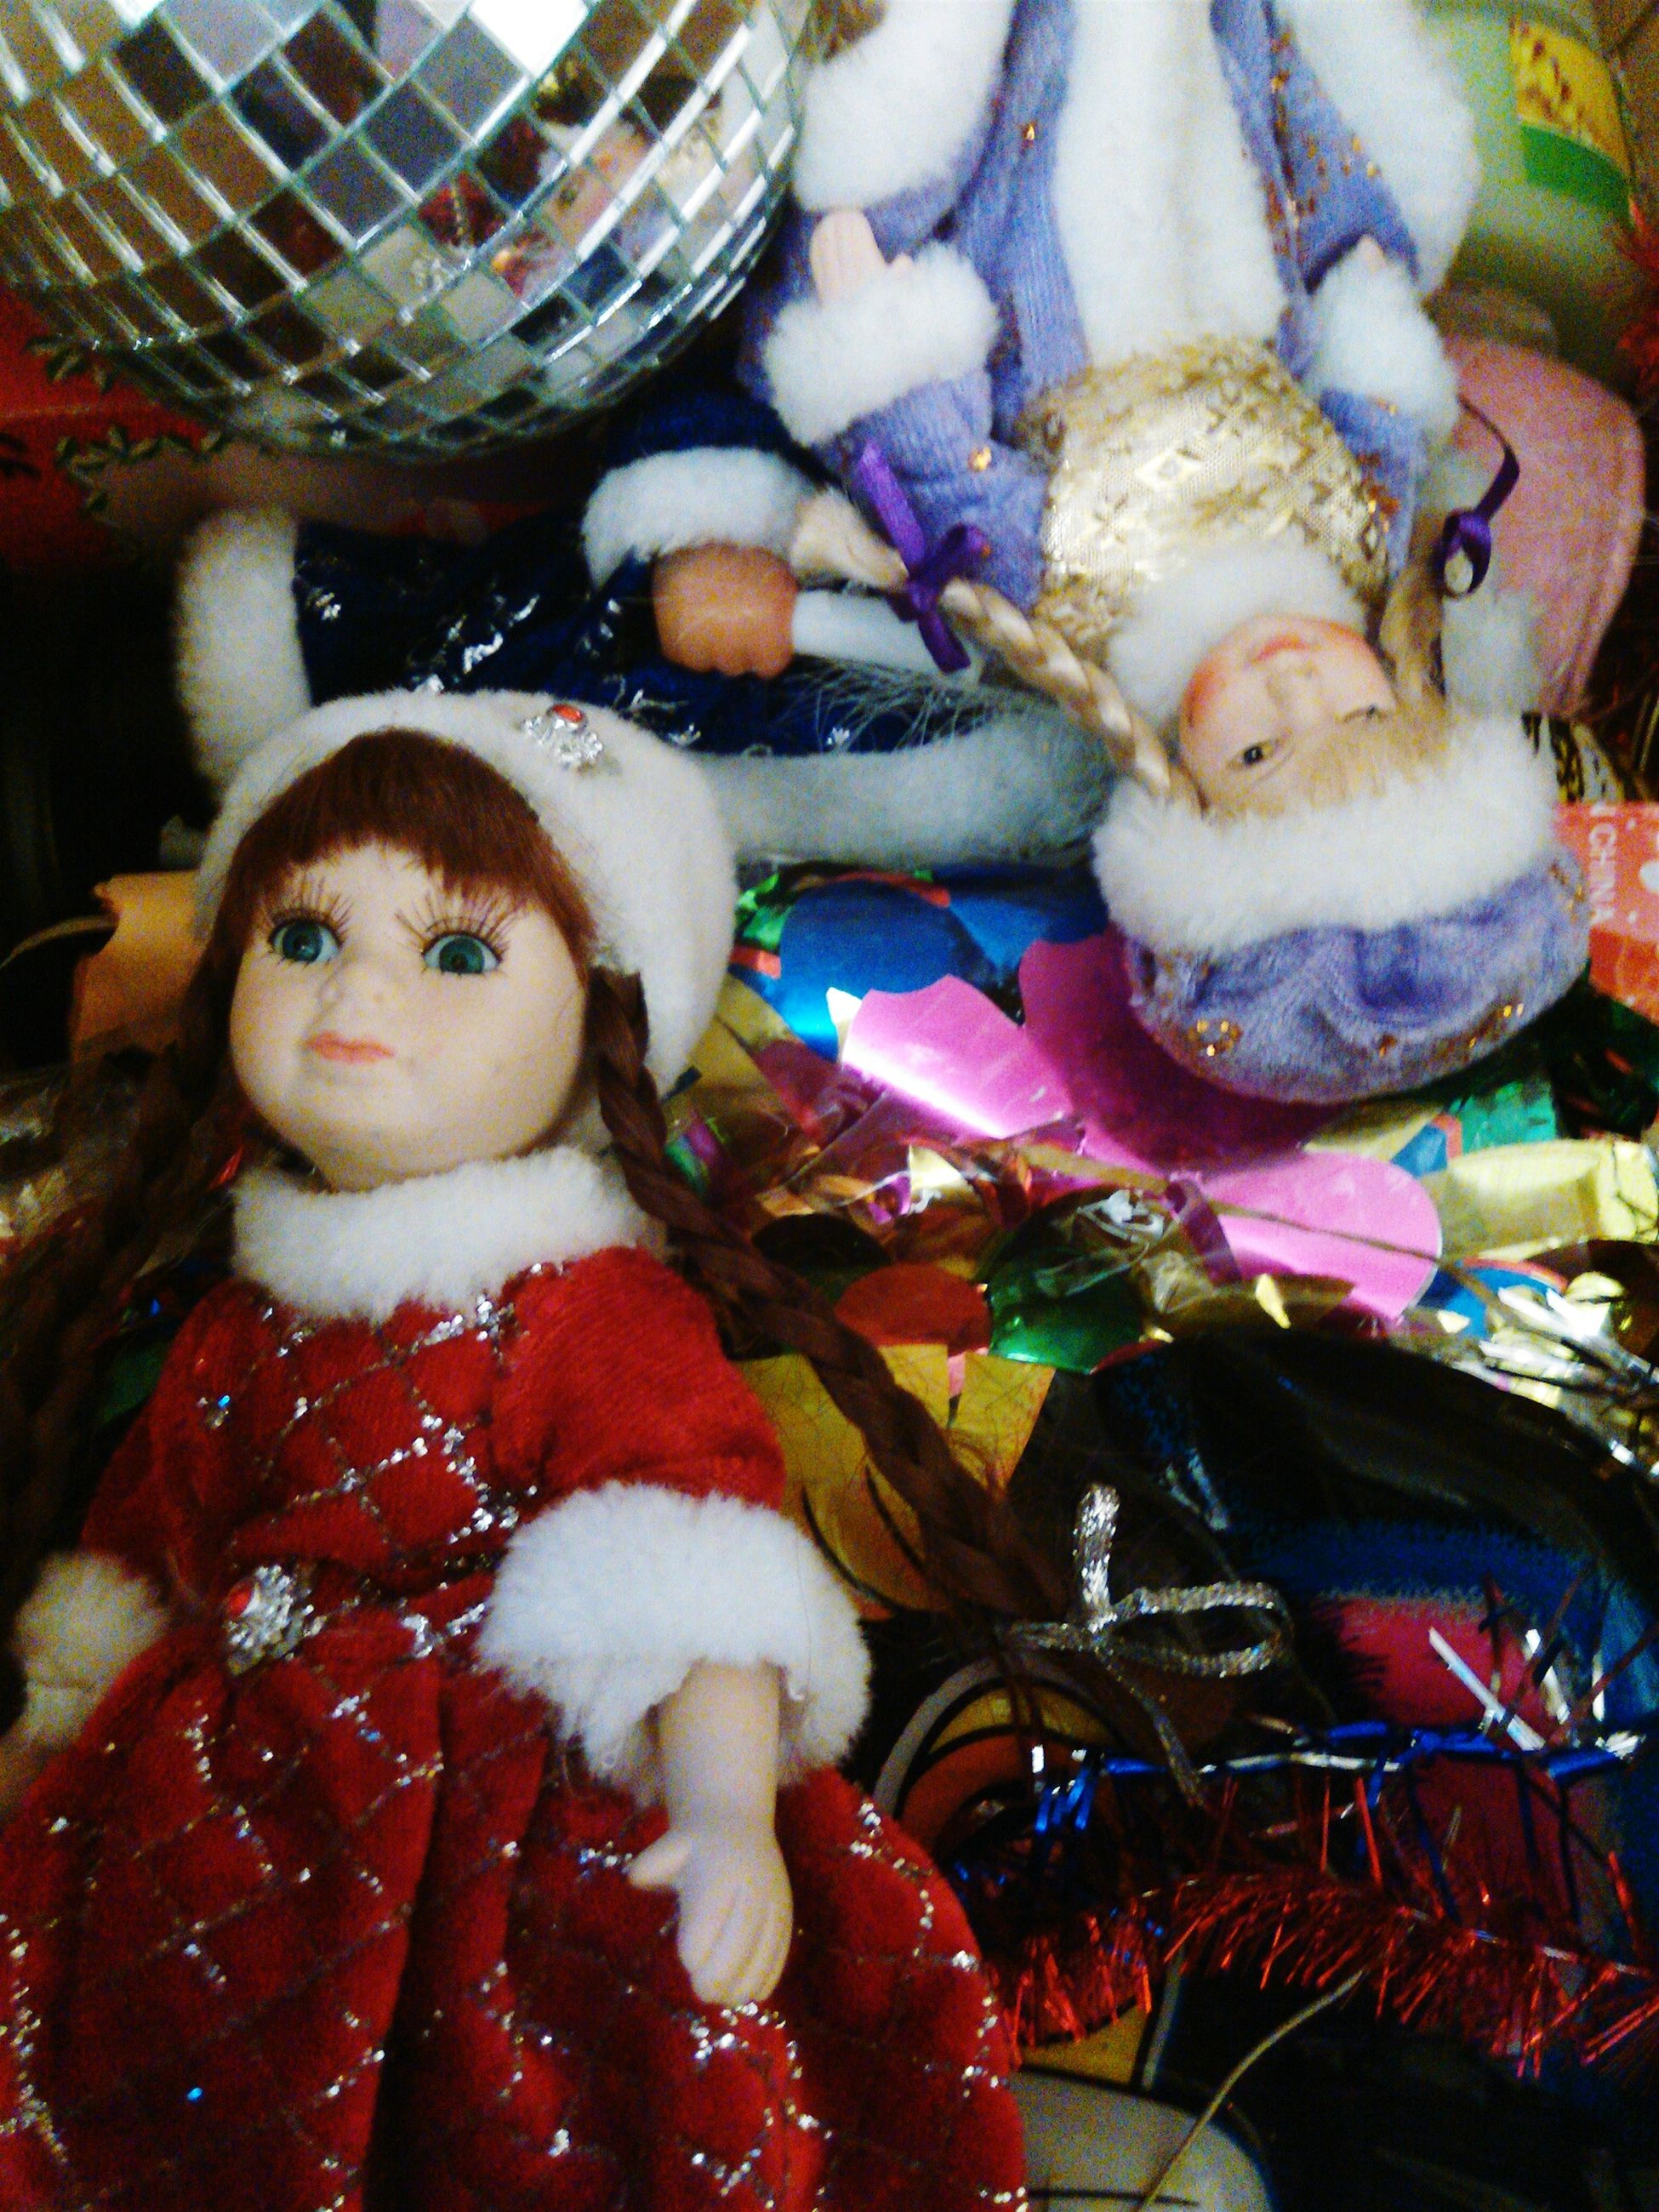 indoors, food, food and drink, christmas, animal representation, pets, animal themes, portrait, looking at camera, still life, domestic animals, high angle view, close-up, variation, retail, celebration, toy, stuffed toy, red, no people